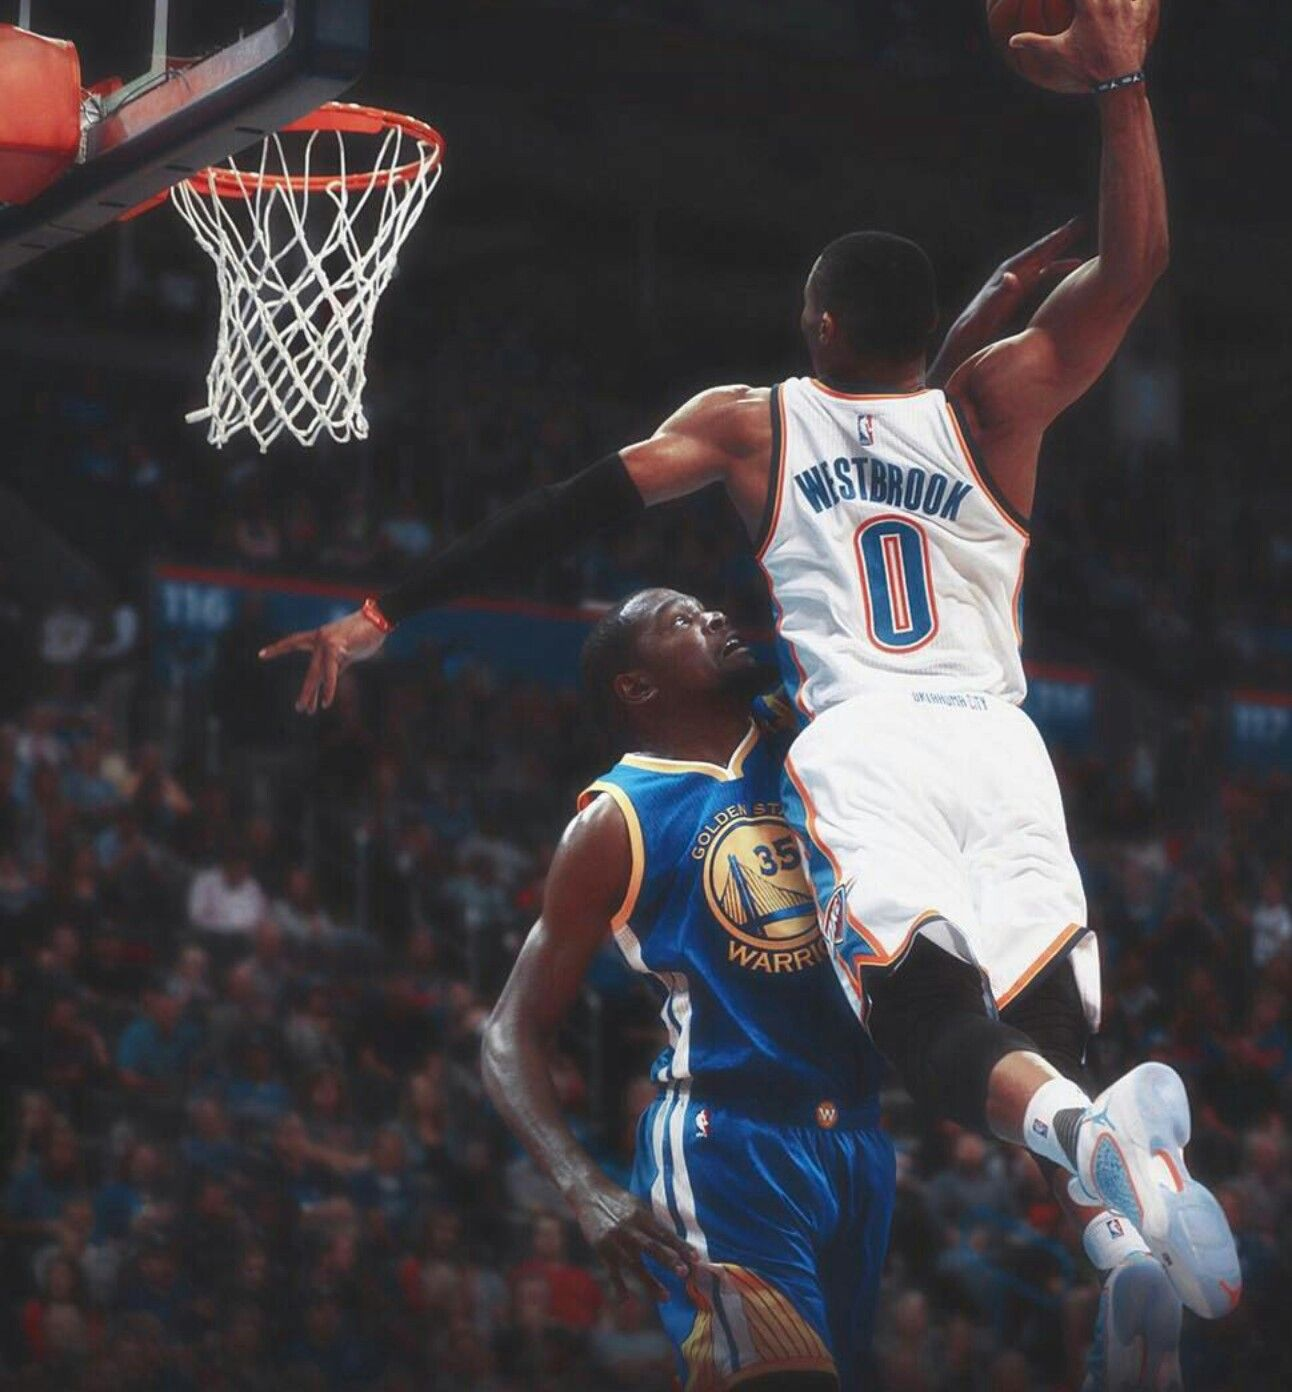 Knight Basketball Player Wallpaper: Russell Westbrook Vs Kevin Durant